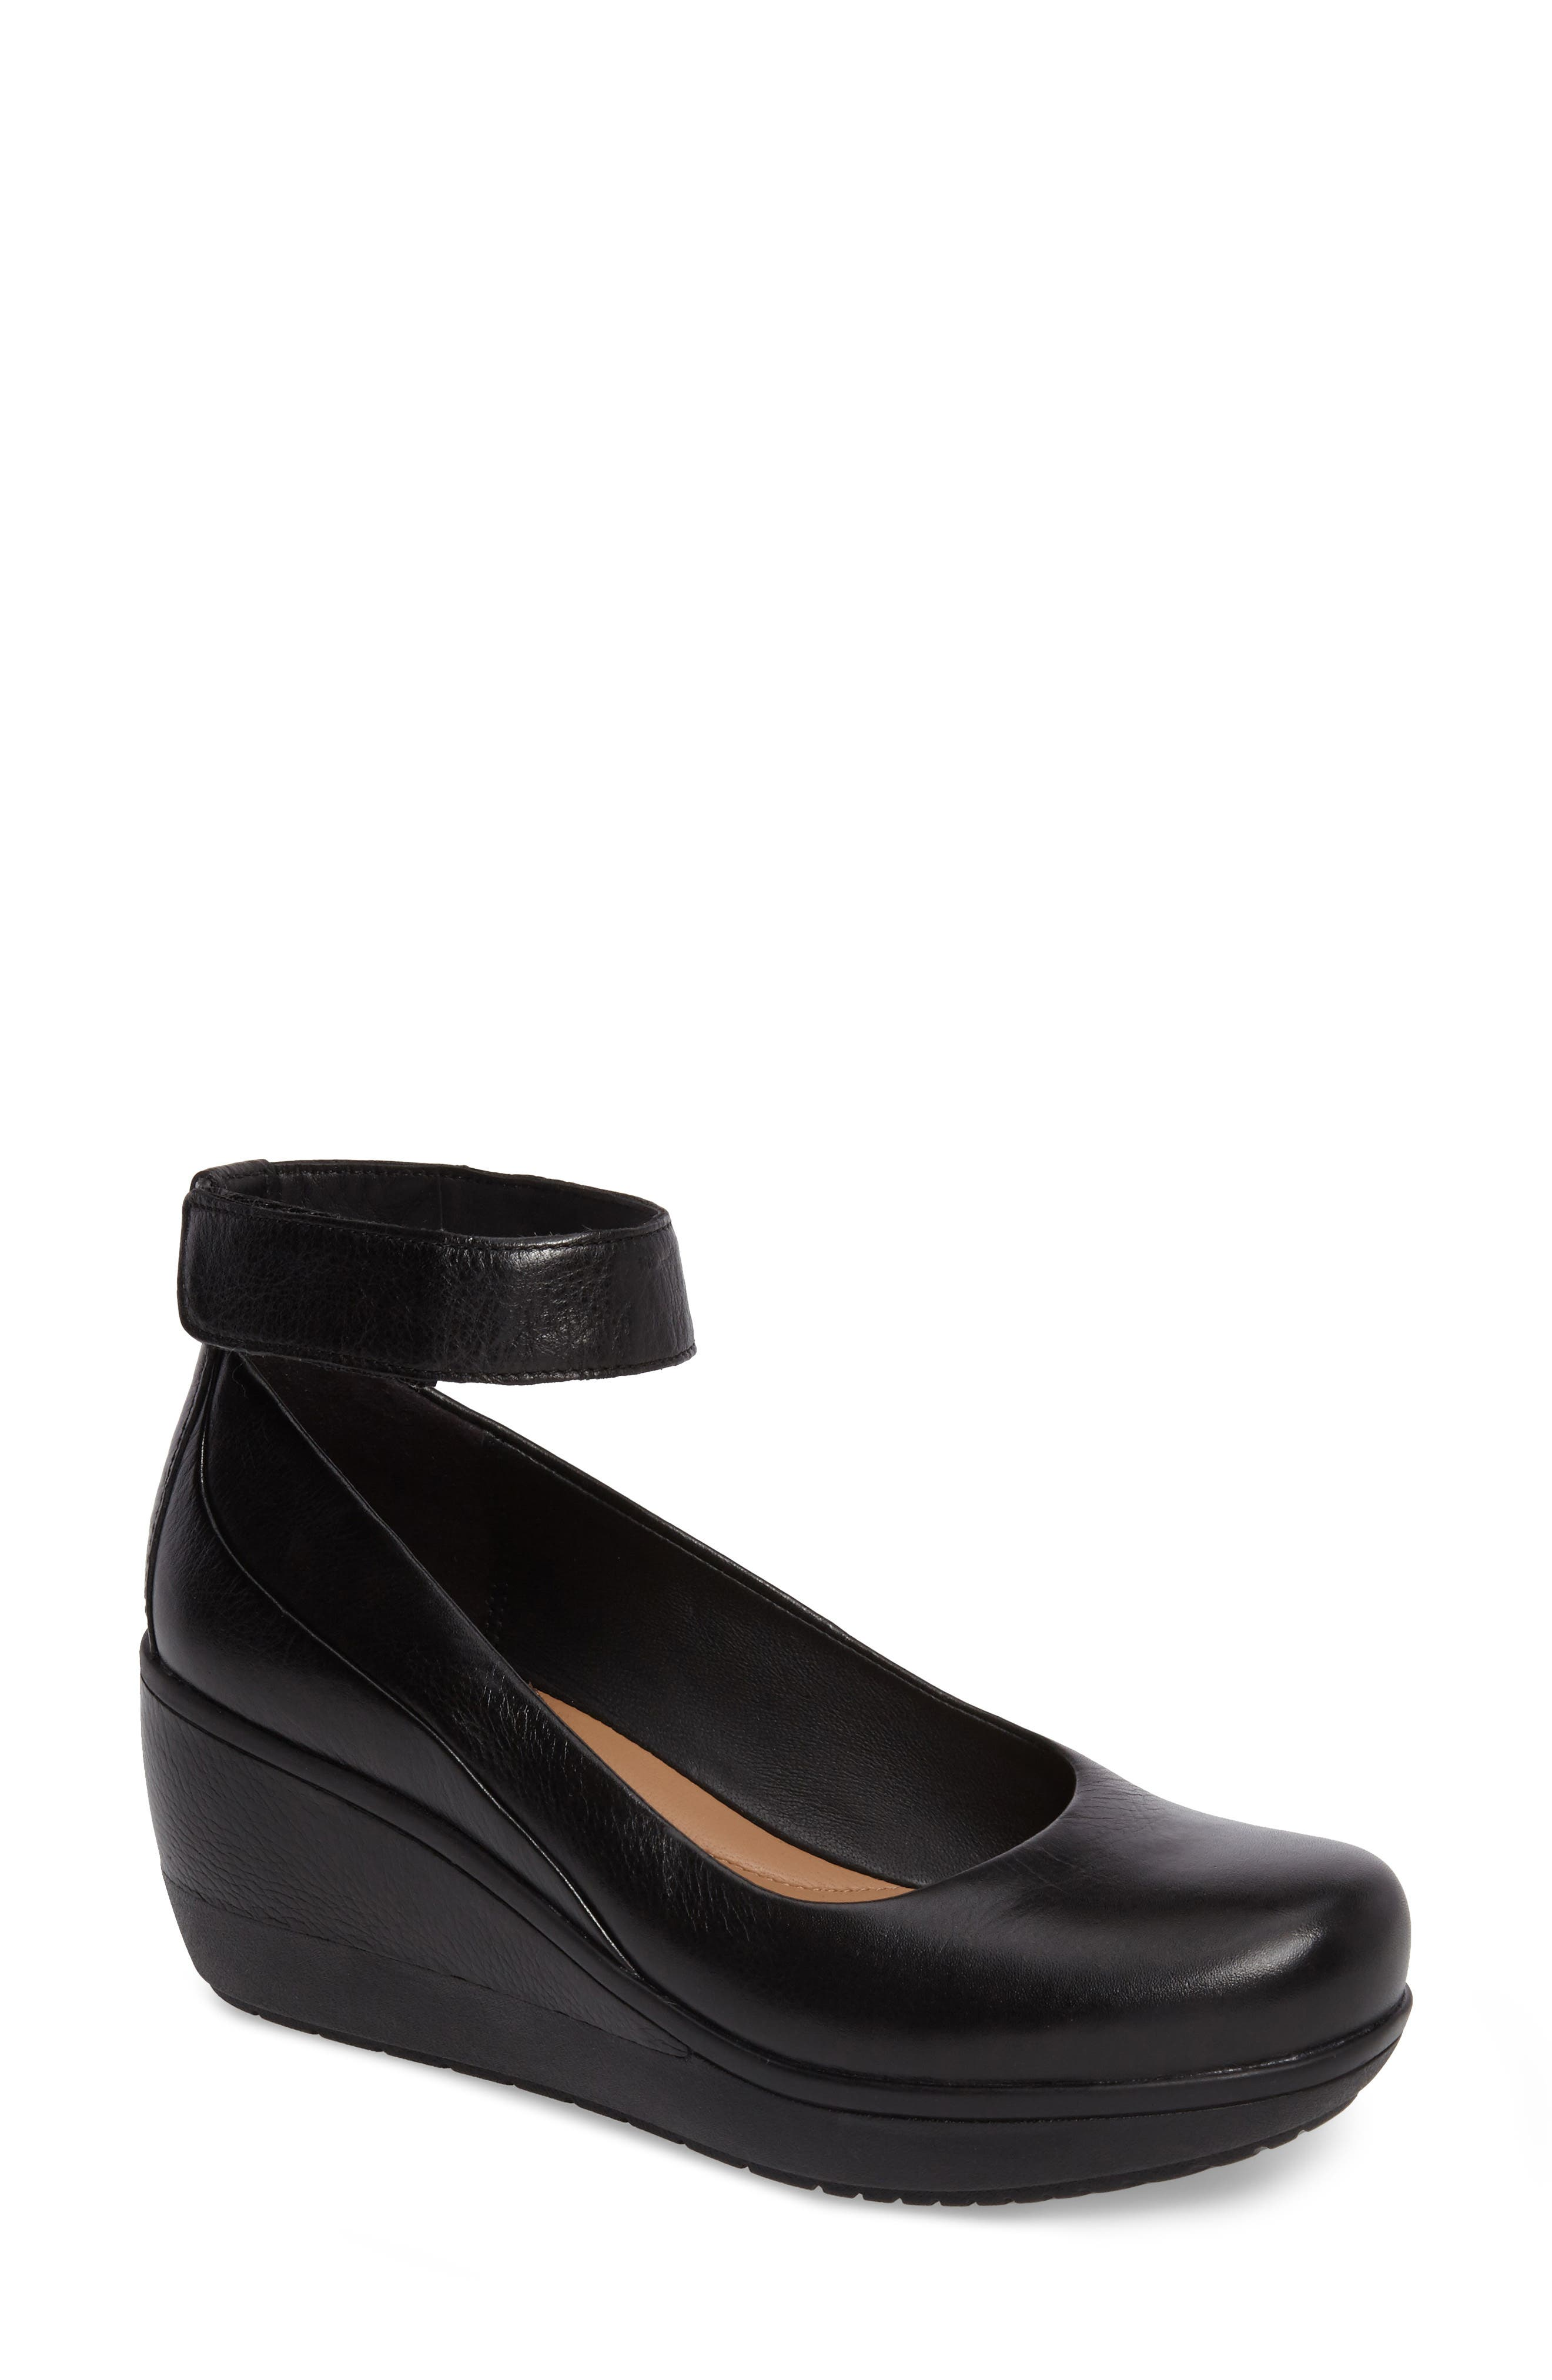 Wynnmere Fox Ankle Strap Pump,                         Main,                         color, BLACK LEATHER